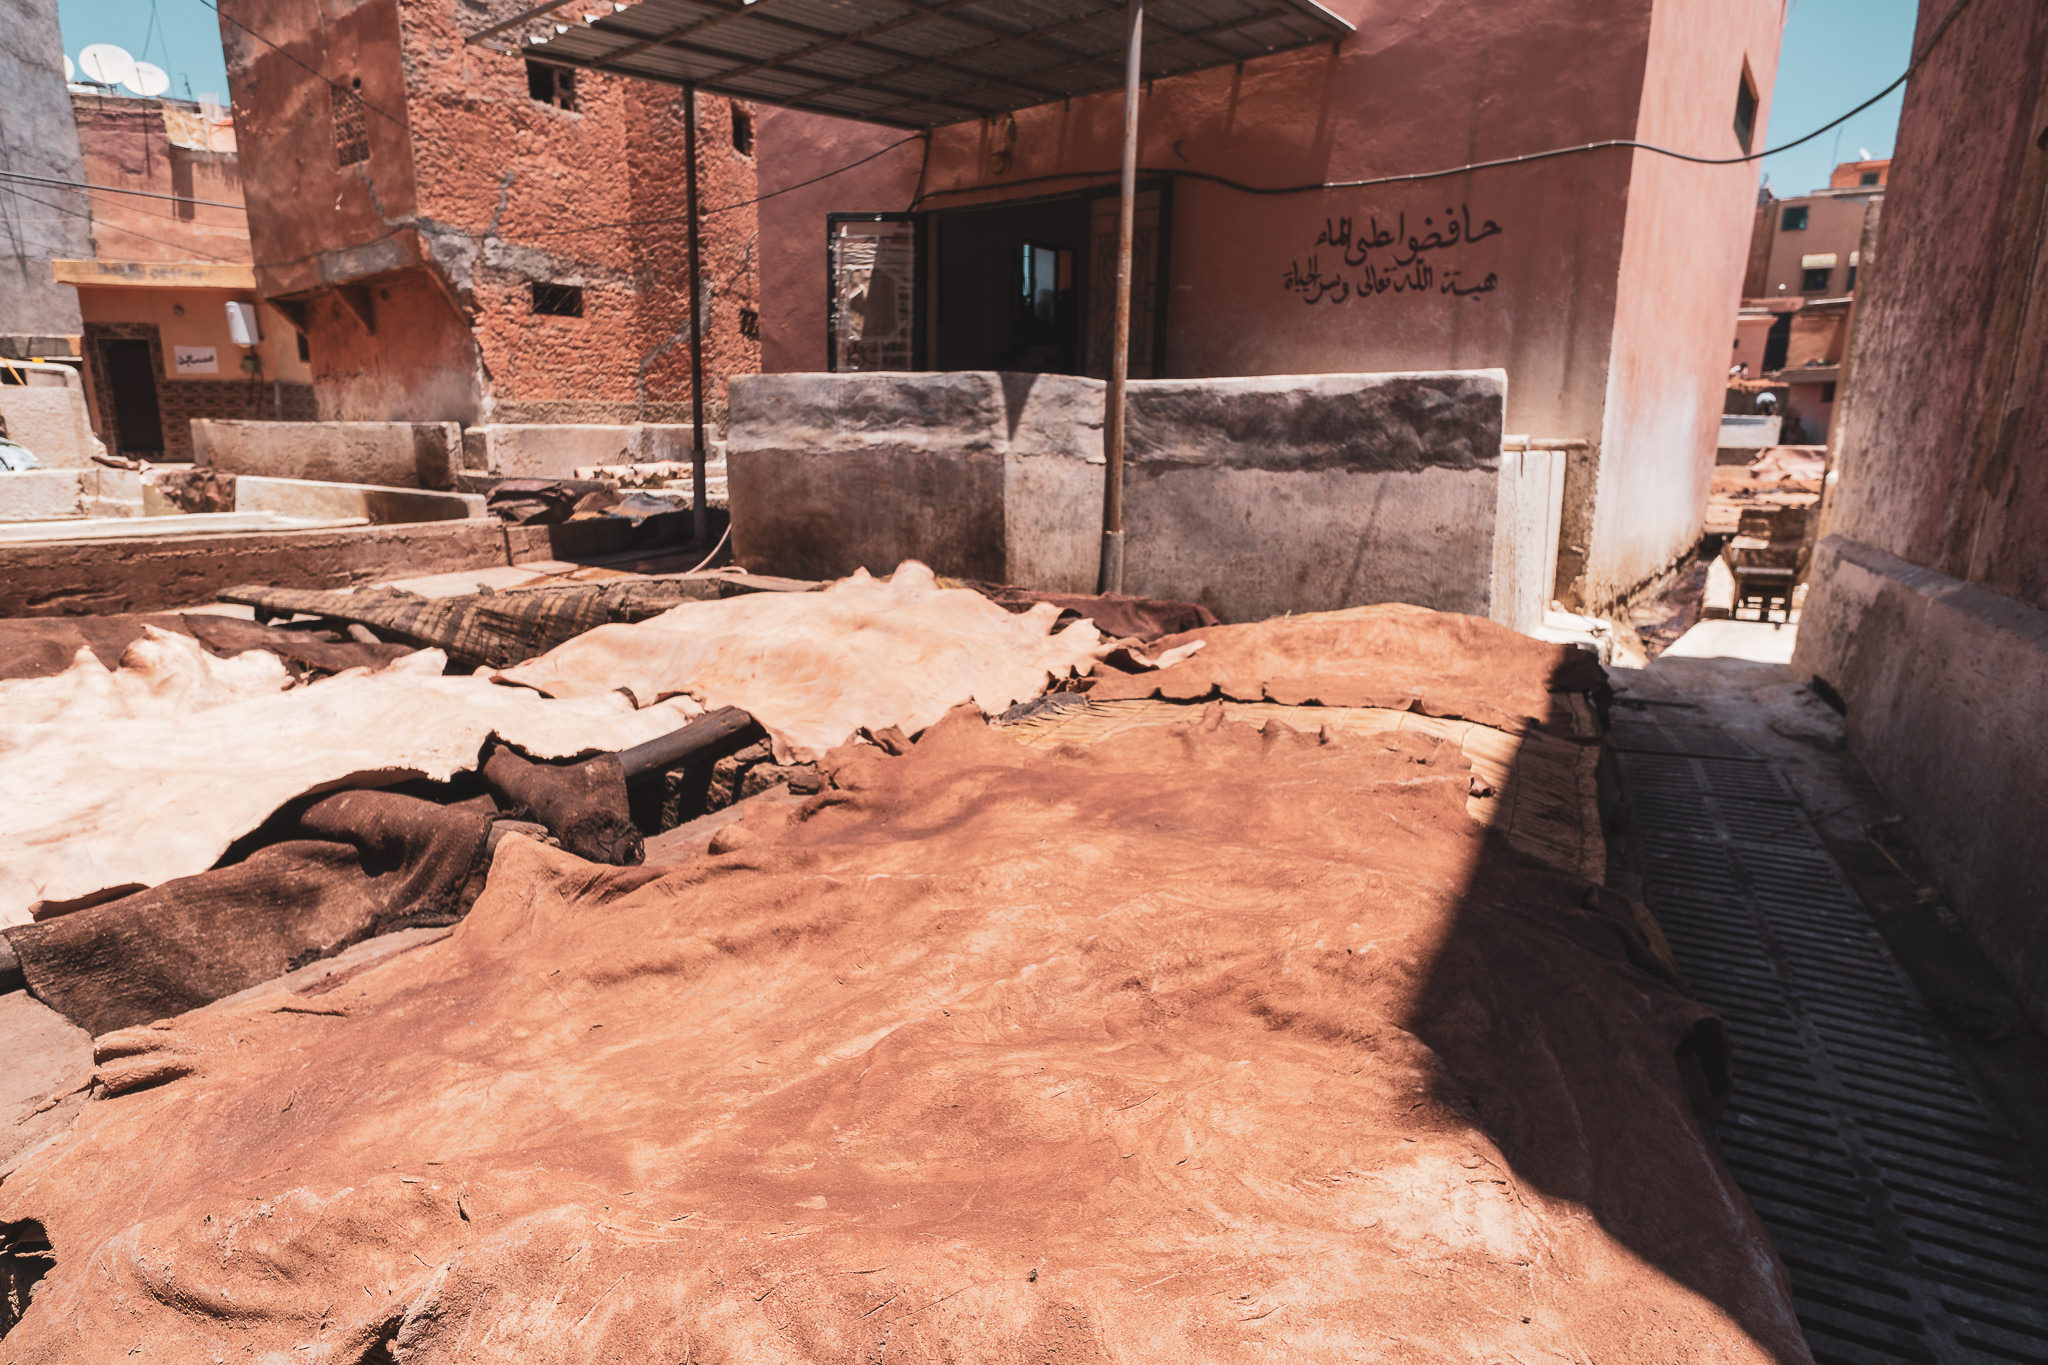 Leather being made, Marrakech